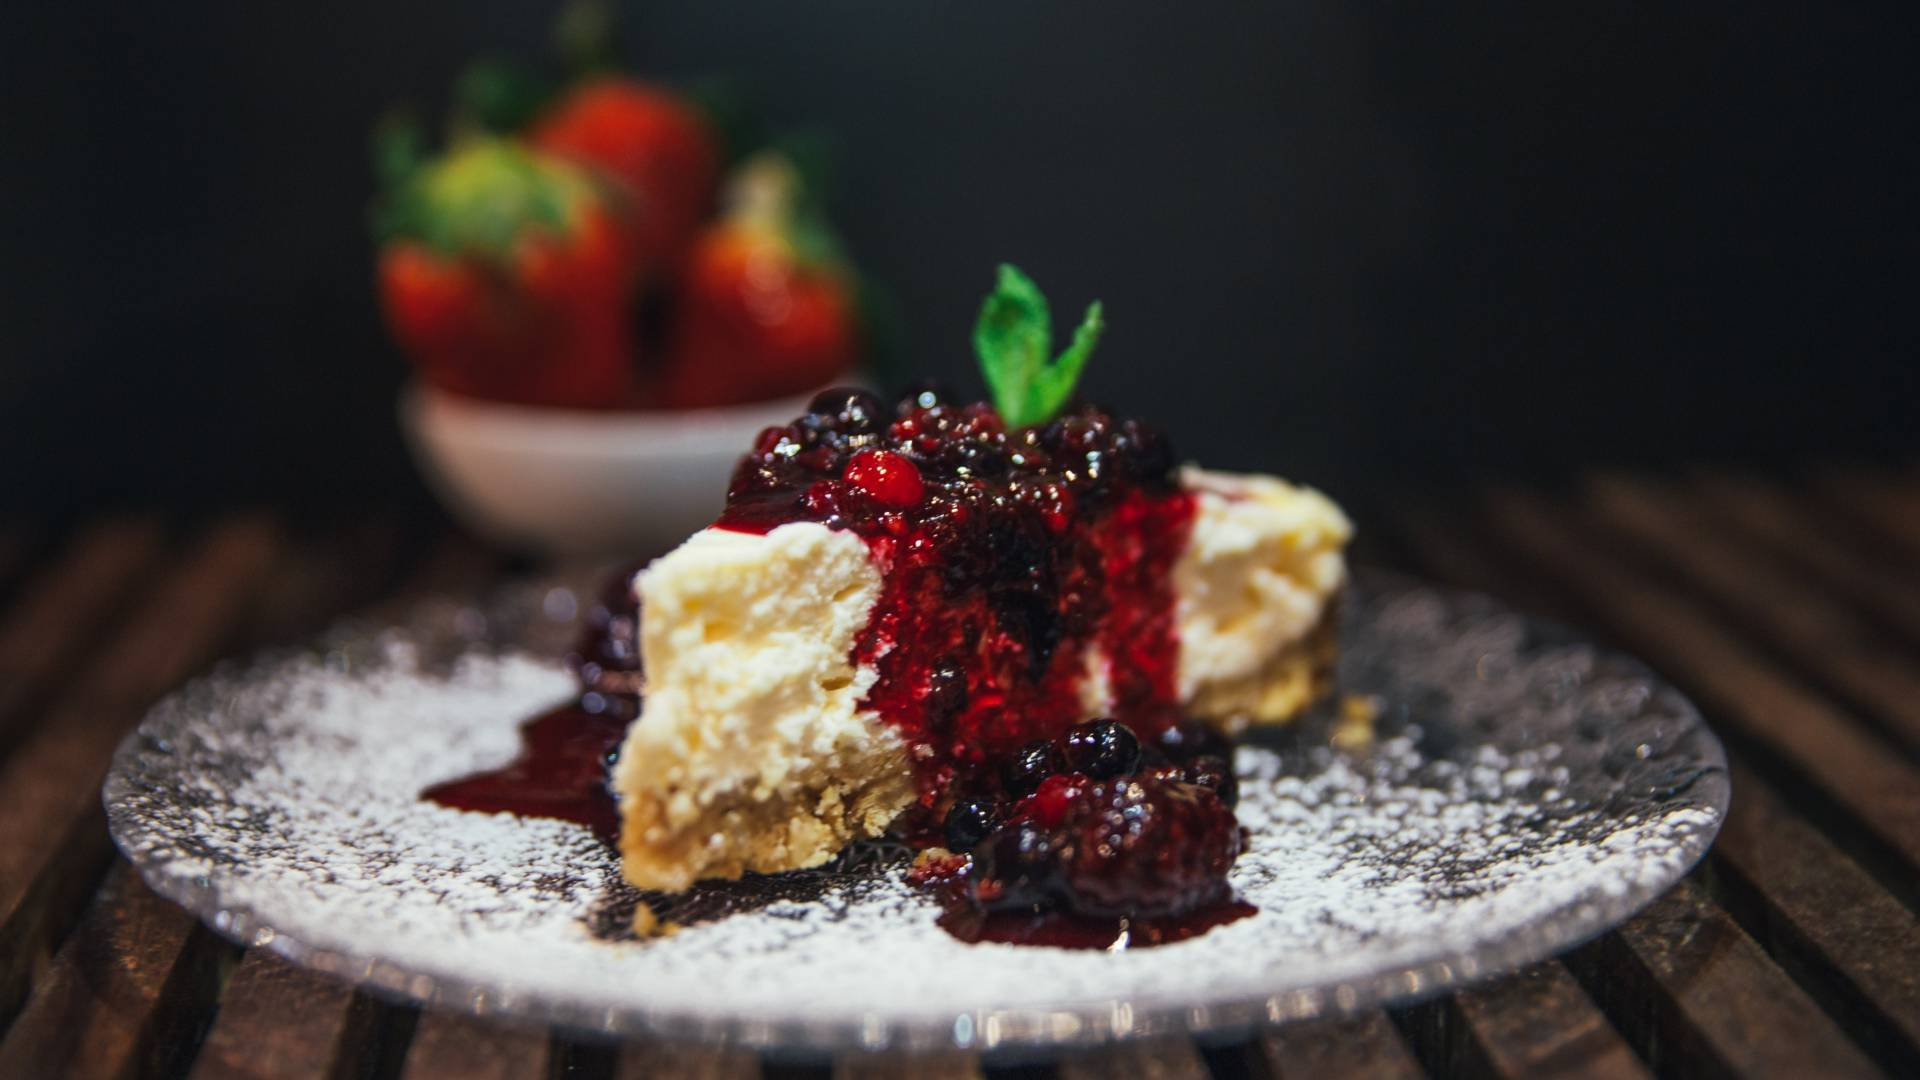 Rry cheesecake 4460x4460